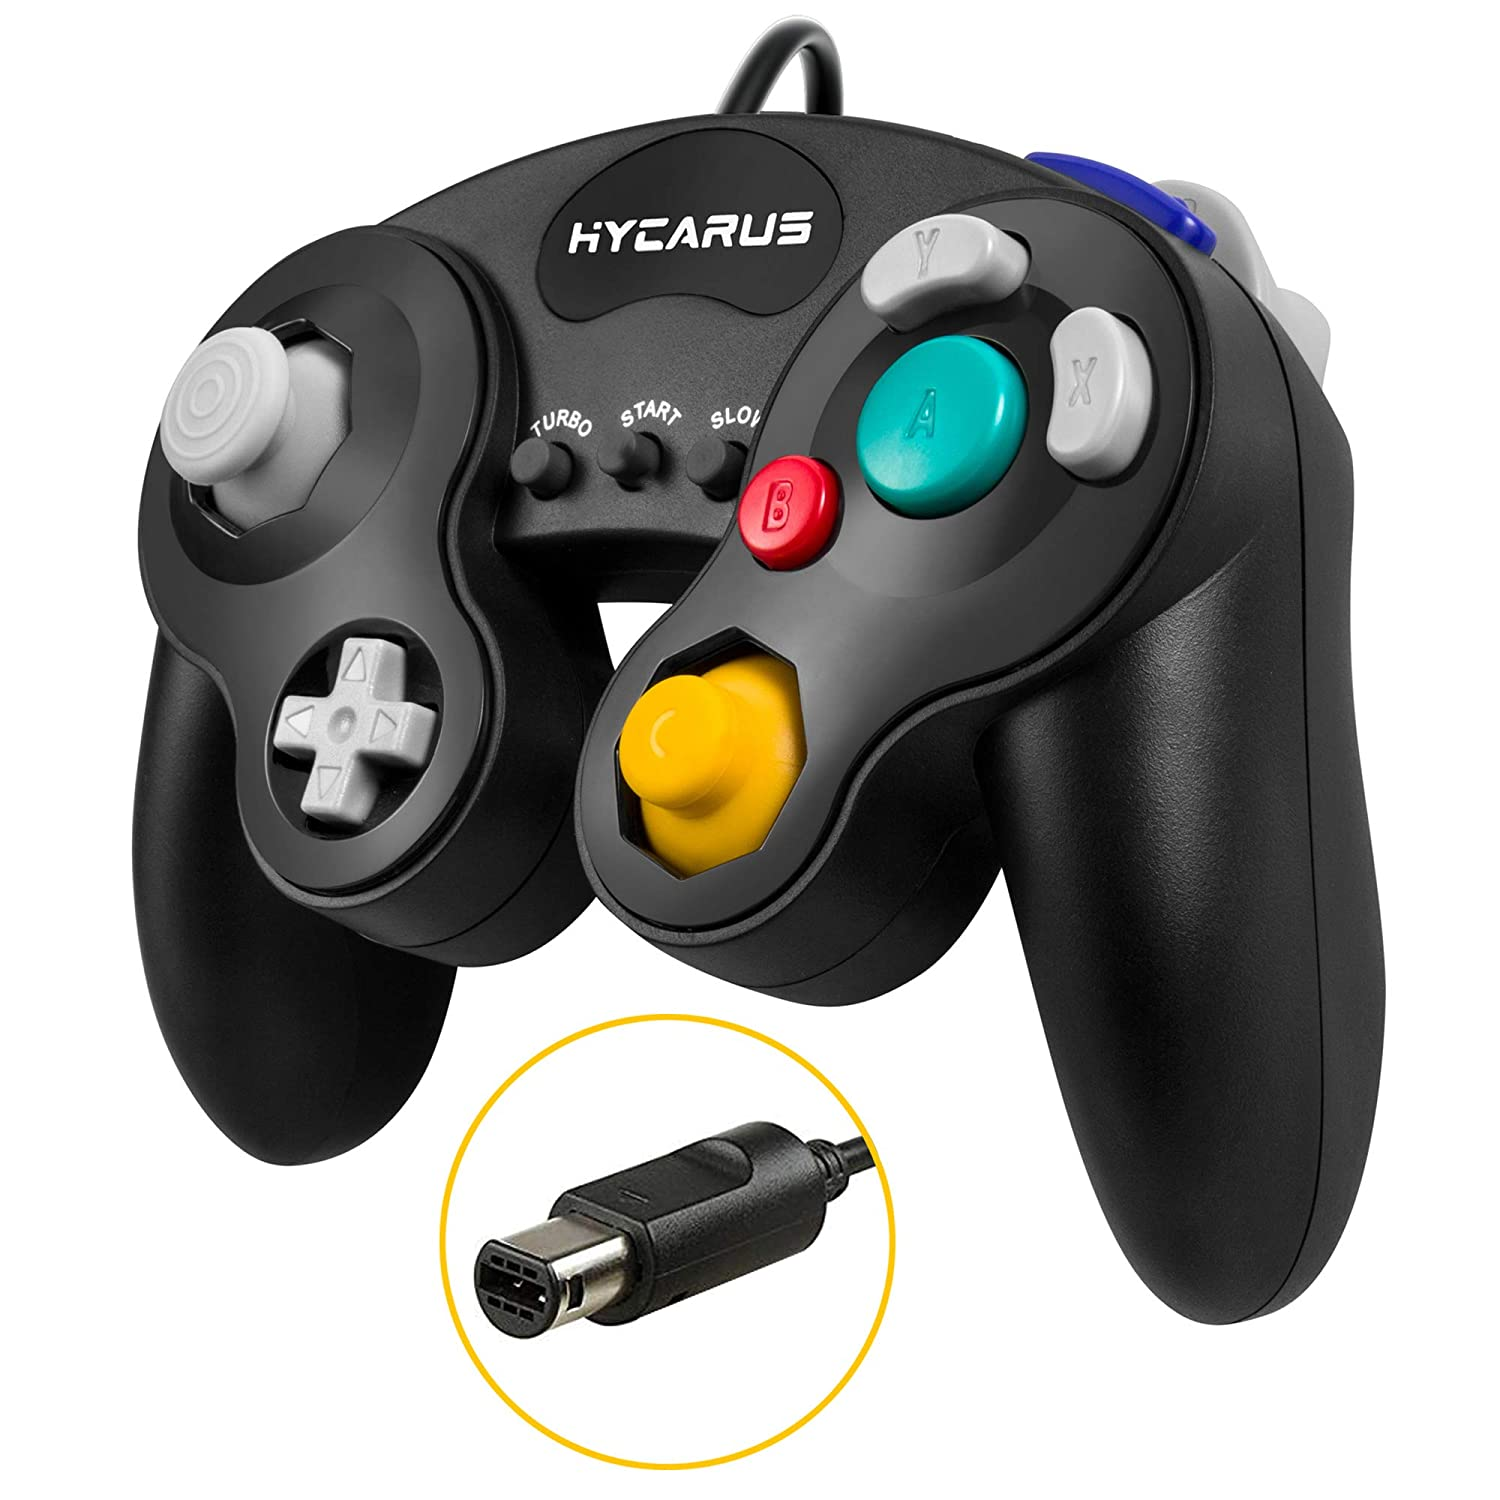 Gamecube Controller, HYCARUS Black Game Cube Controller with Turbo and Slow  Buttons, Gamecube Controller Switch Edition for Nintendo Gamecube